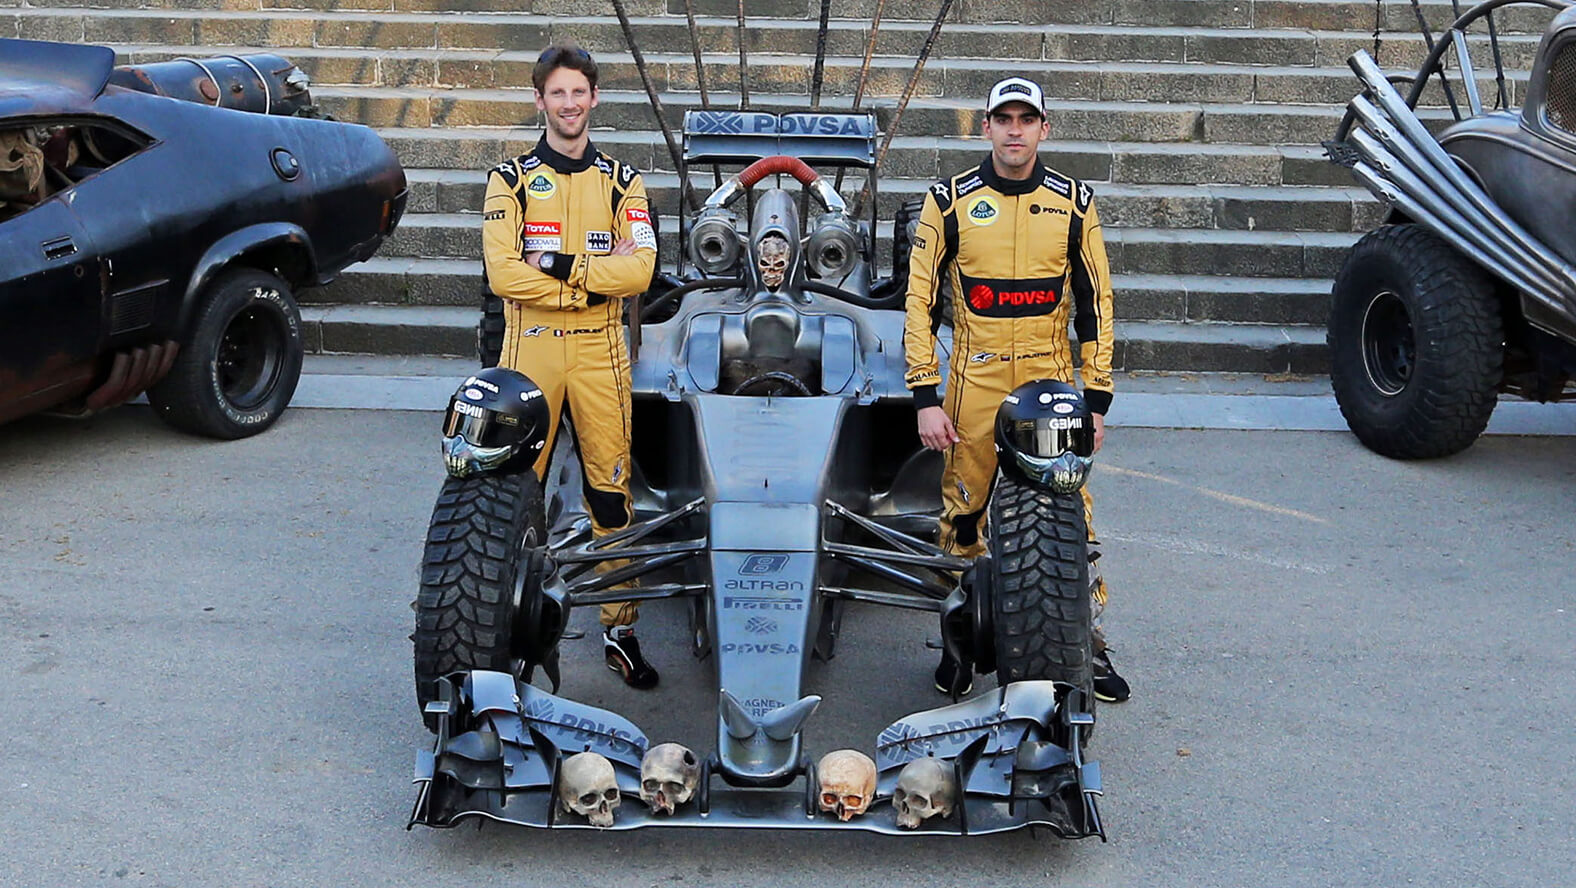 The new car - the Lotus F1 Team Mad Max Hybrid